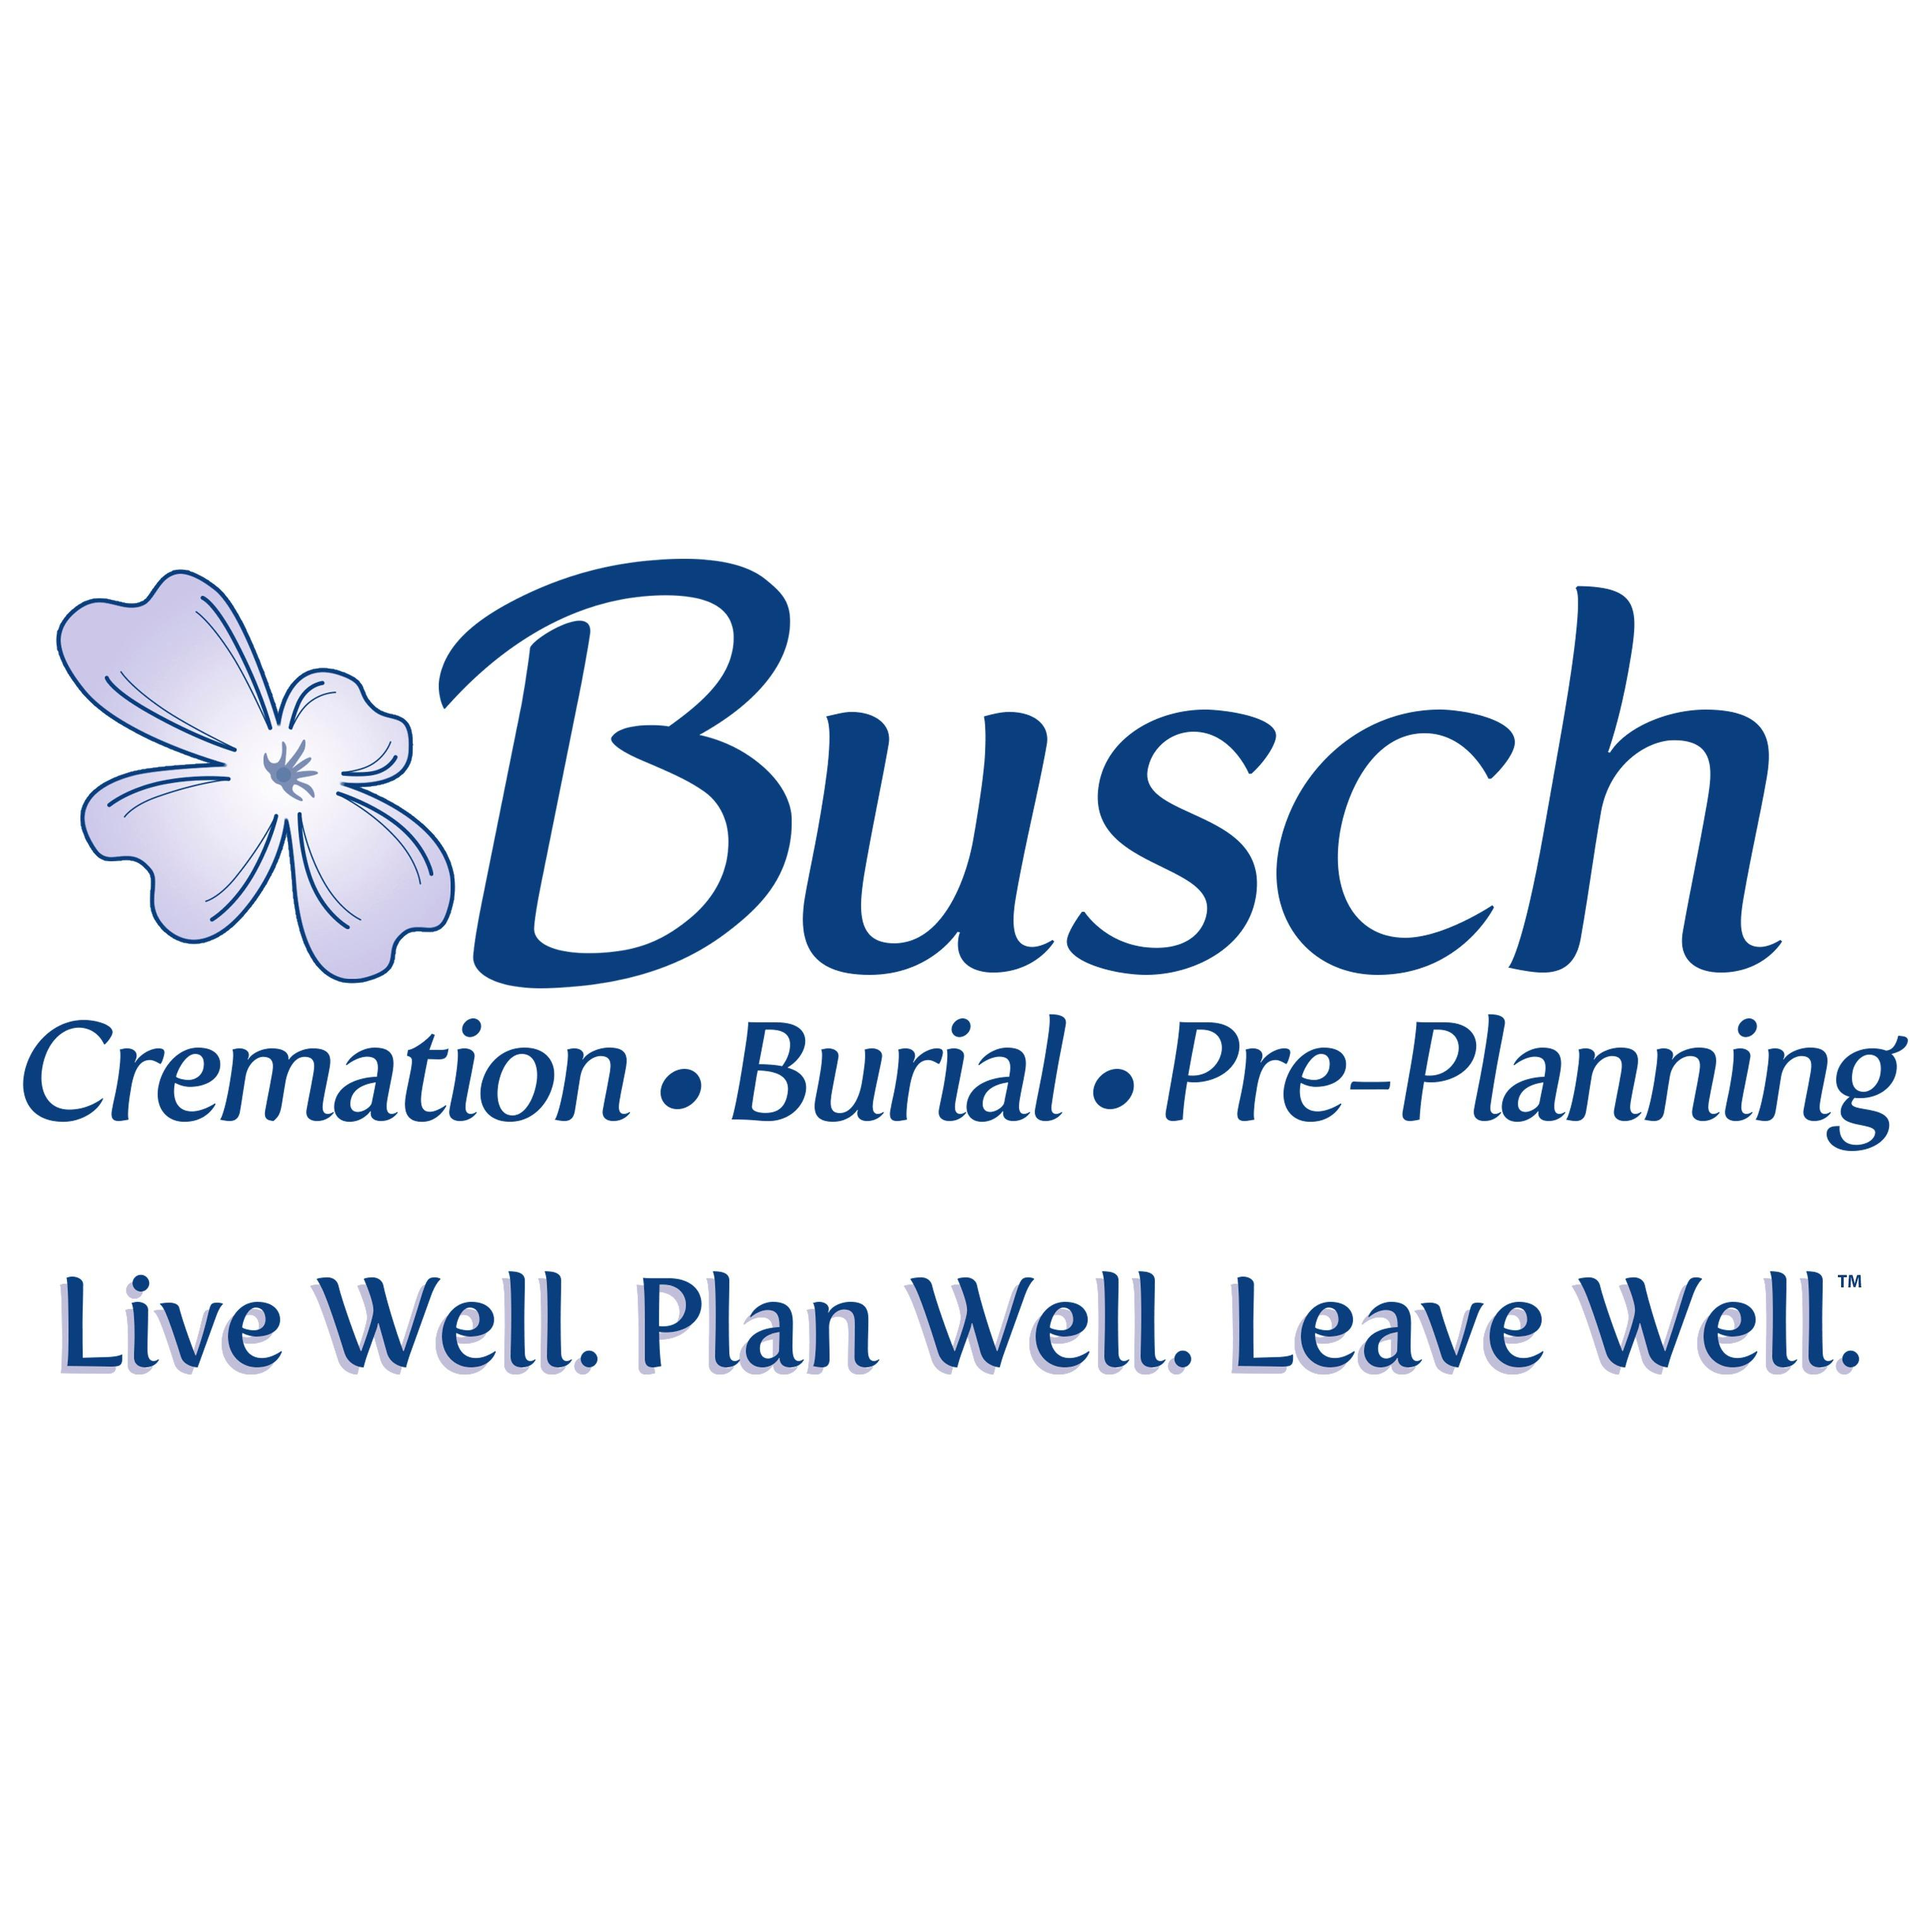 Busch Funeral and Crematory Services Fairview Park - Fairview Park, OH - Funeral Homes & Services